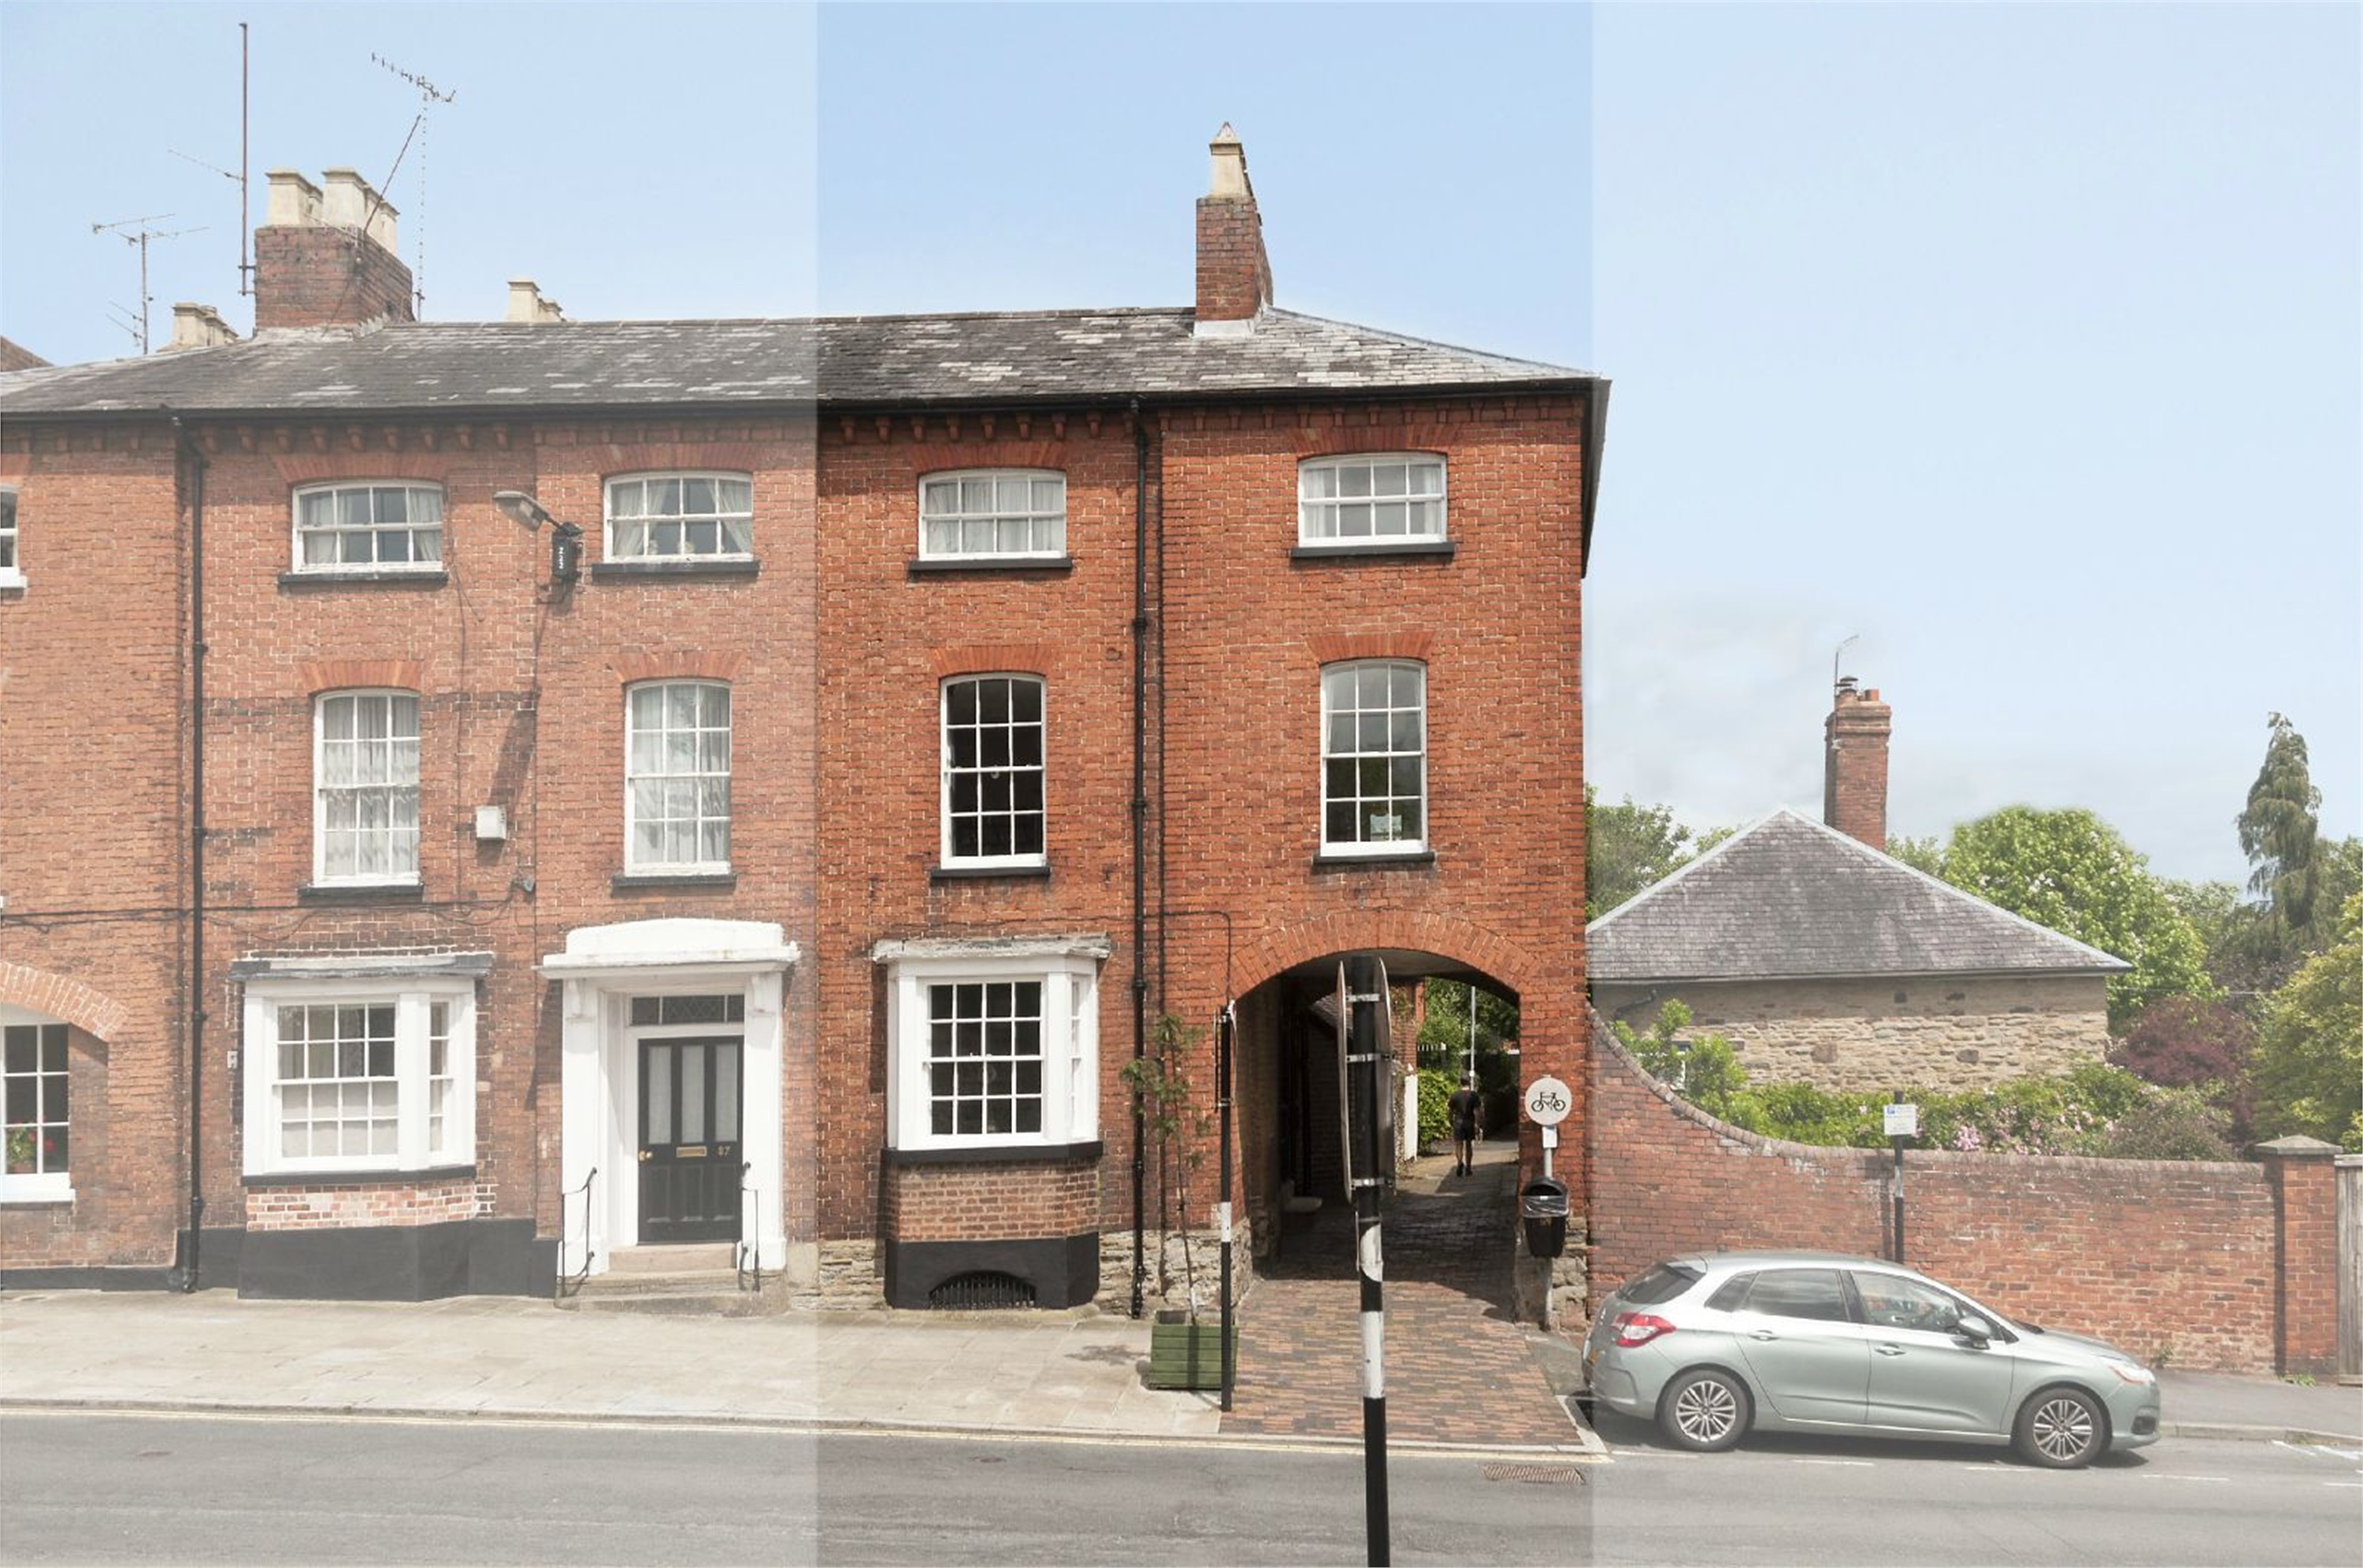 4 Bedrooms Terraced House for sale in 89 Old Street, Ludlow, Shropshire, SY8